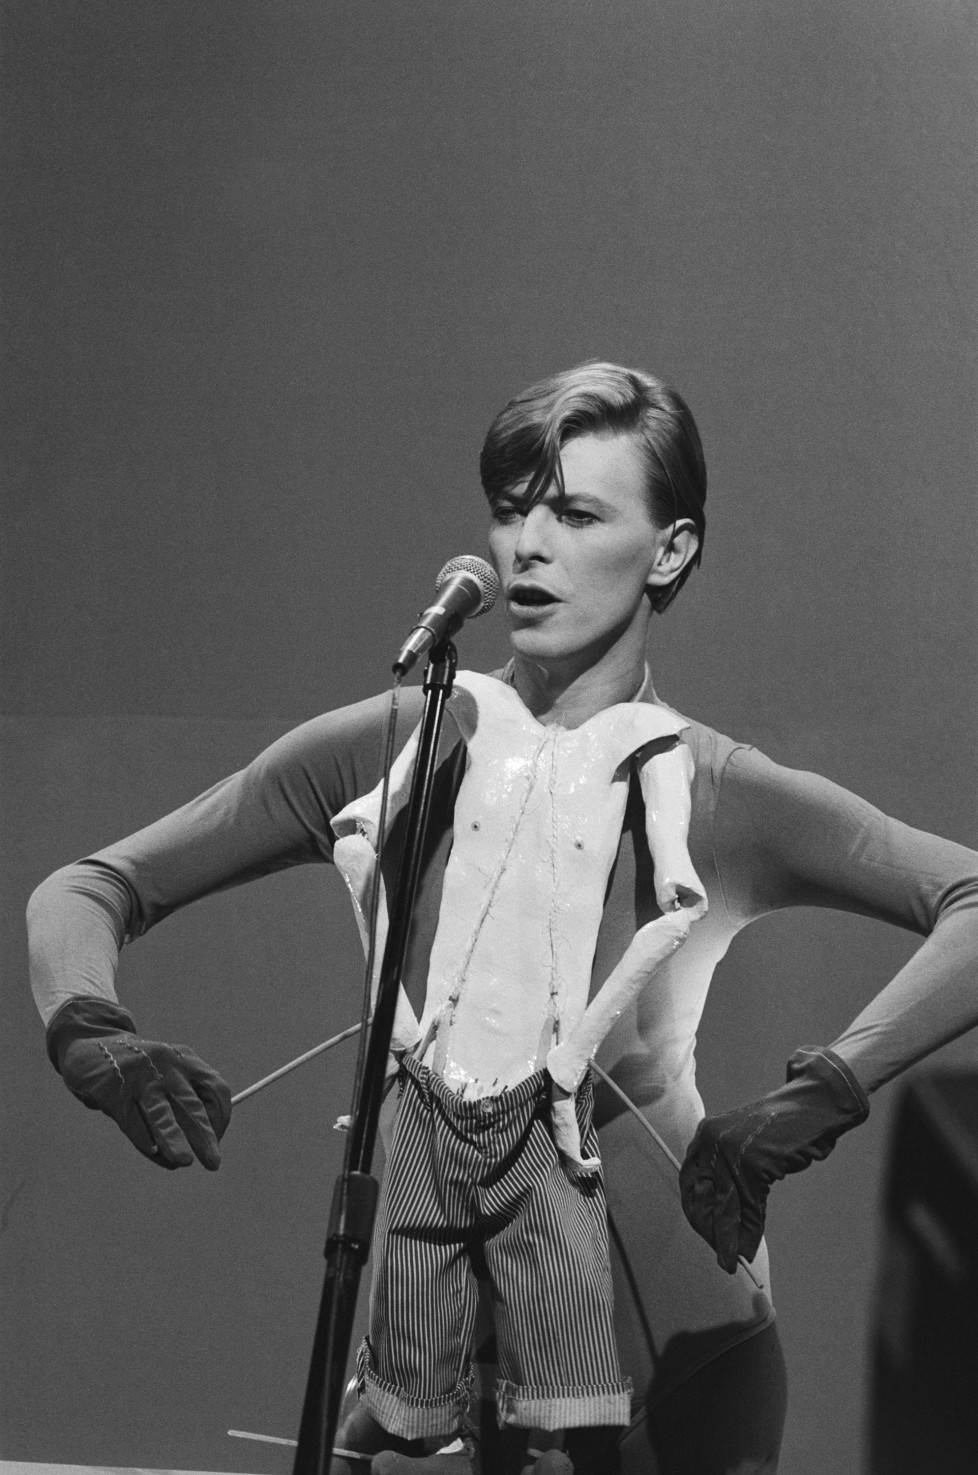 SATURDAY NIGHT LIVE -- Epiosde 7 -- Air Date 12/15/1979 -- Pictured: Musical guest David Bowie performs on December 15, 1979 -- Photo by: Alan Singer/NBCU Photo Bank